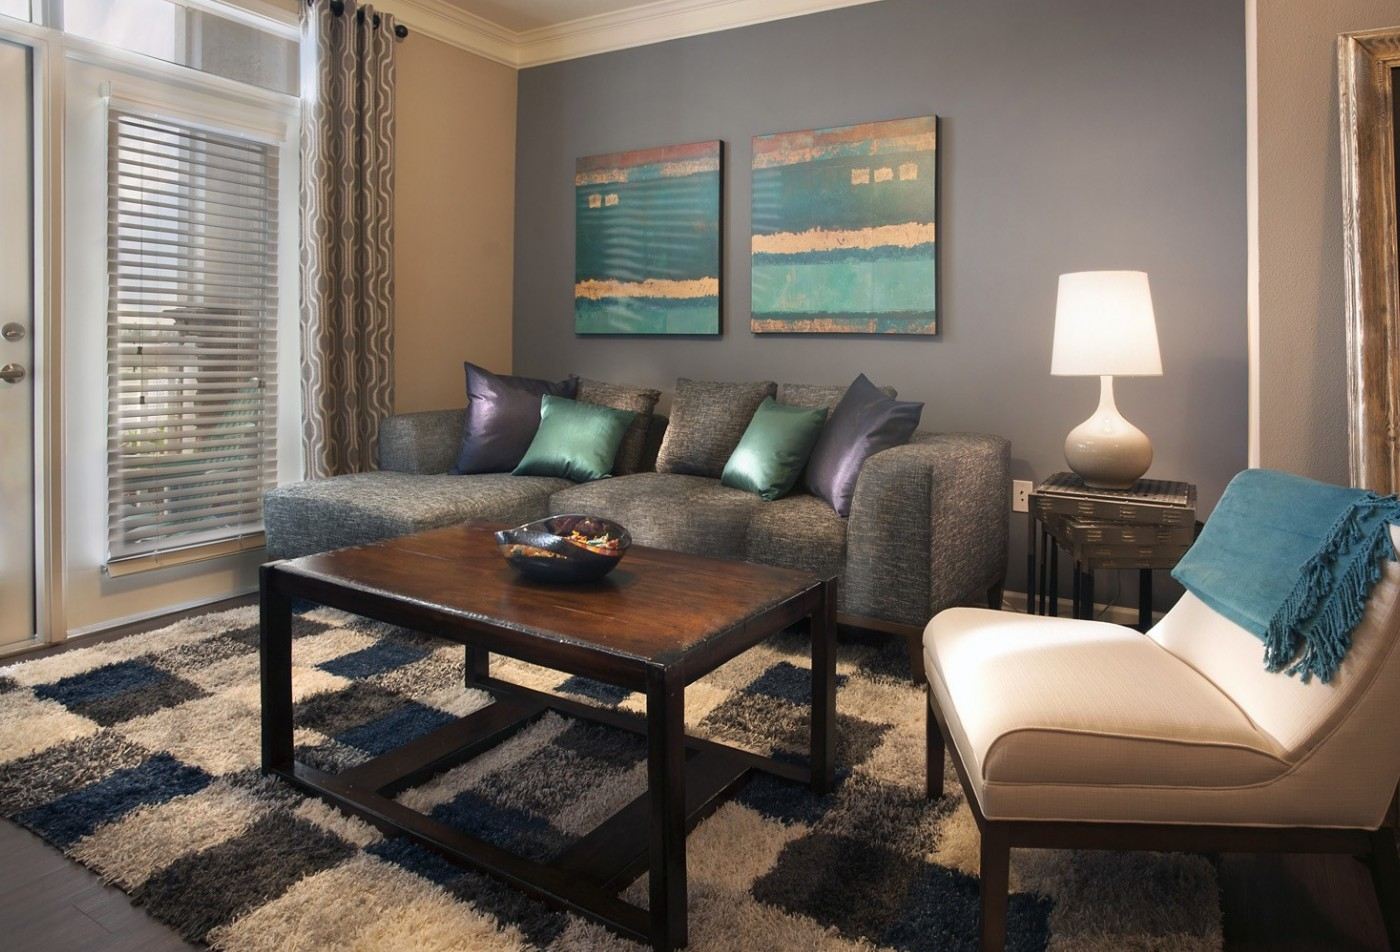 Grand Oak at Town Park Luxury Apartments